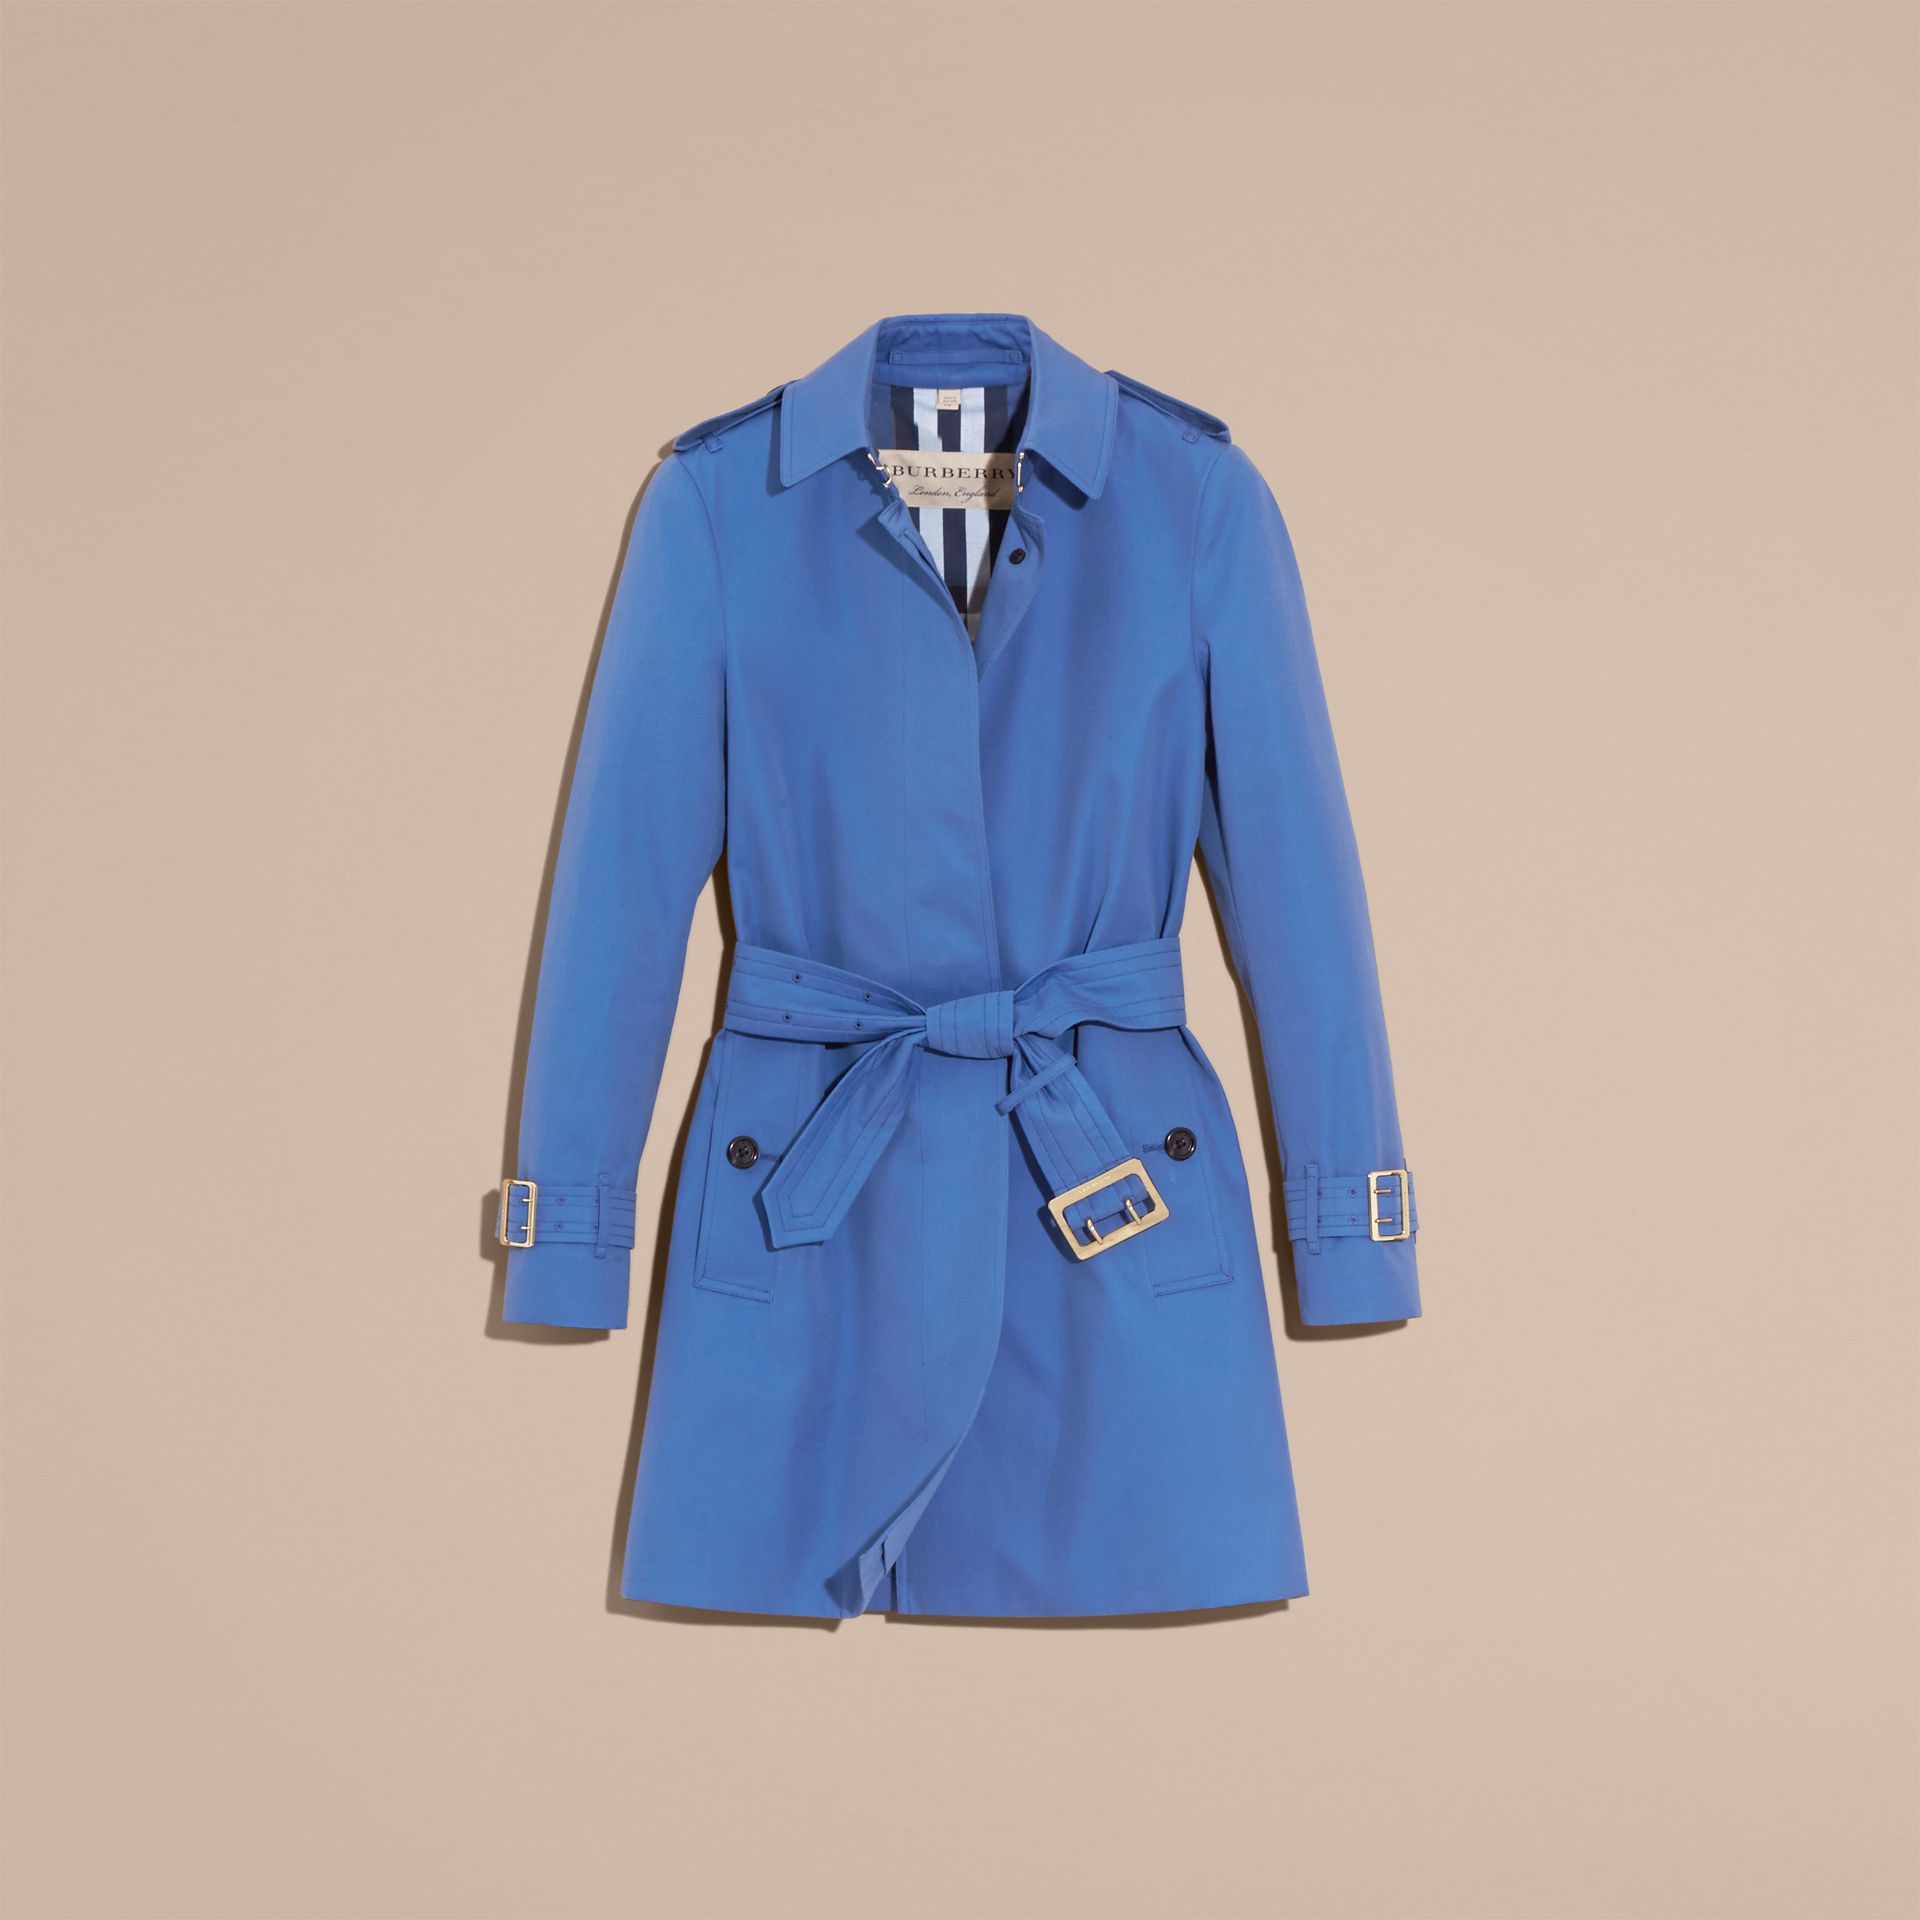 Bright steel blue Single-breasted Trench Coat with Metal Buckle Detail Bright Steel Blue - gallery image 4